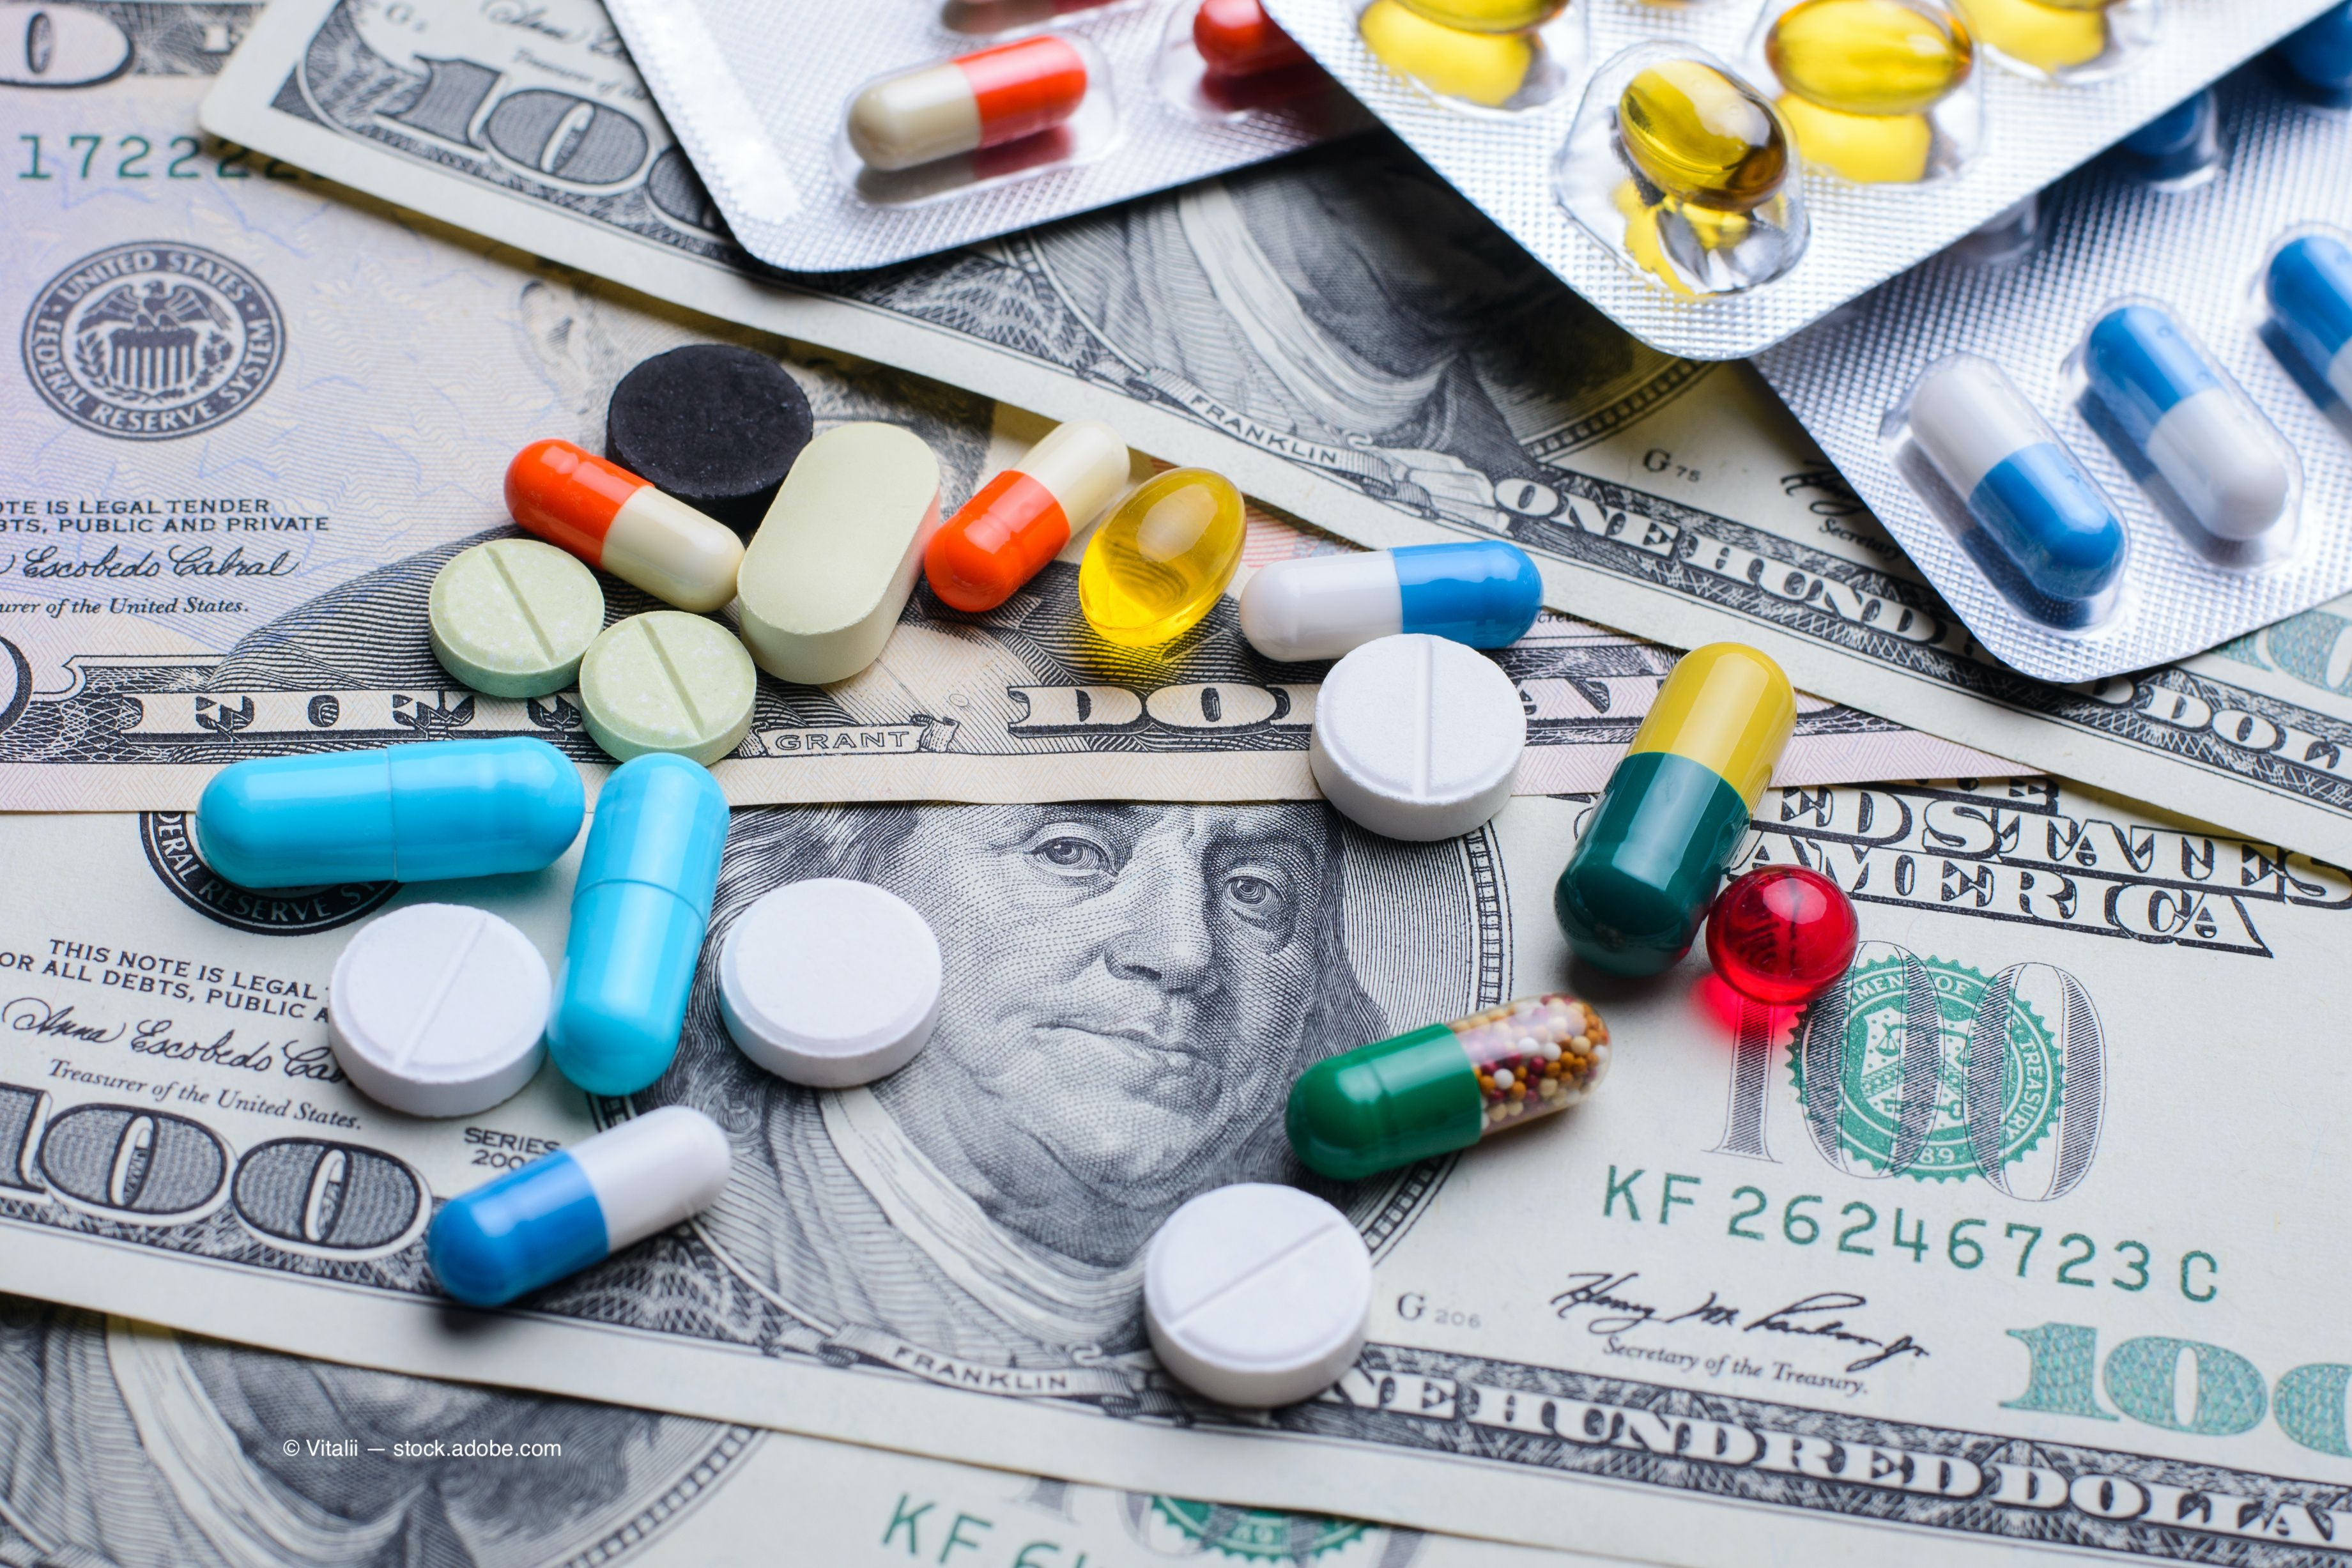 »MYTH No. 3: Patients will not be willing to absorb the cost or hassle of ASEDs